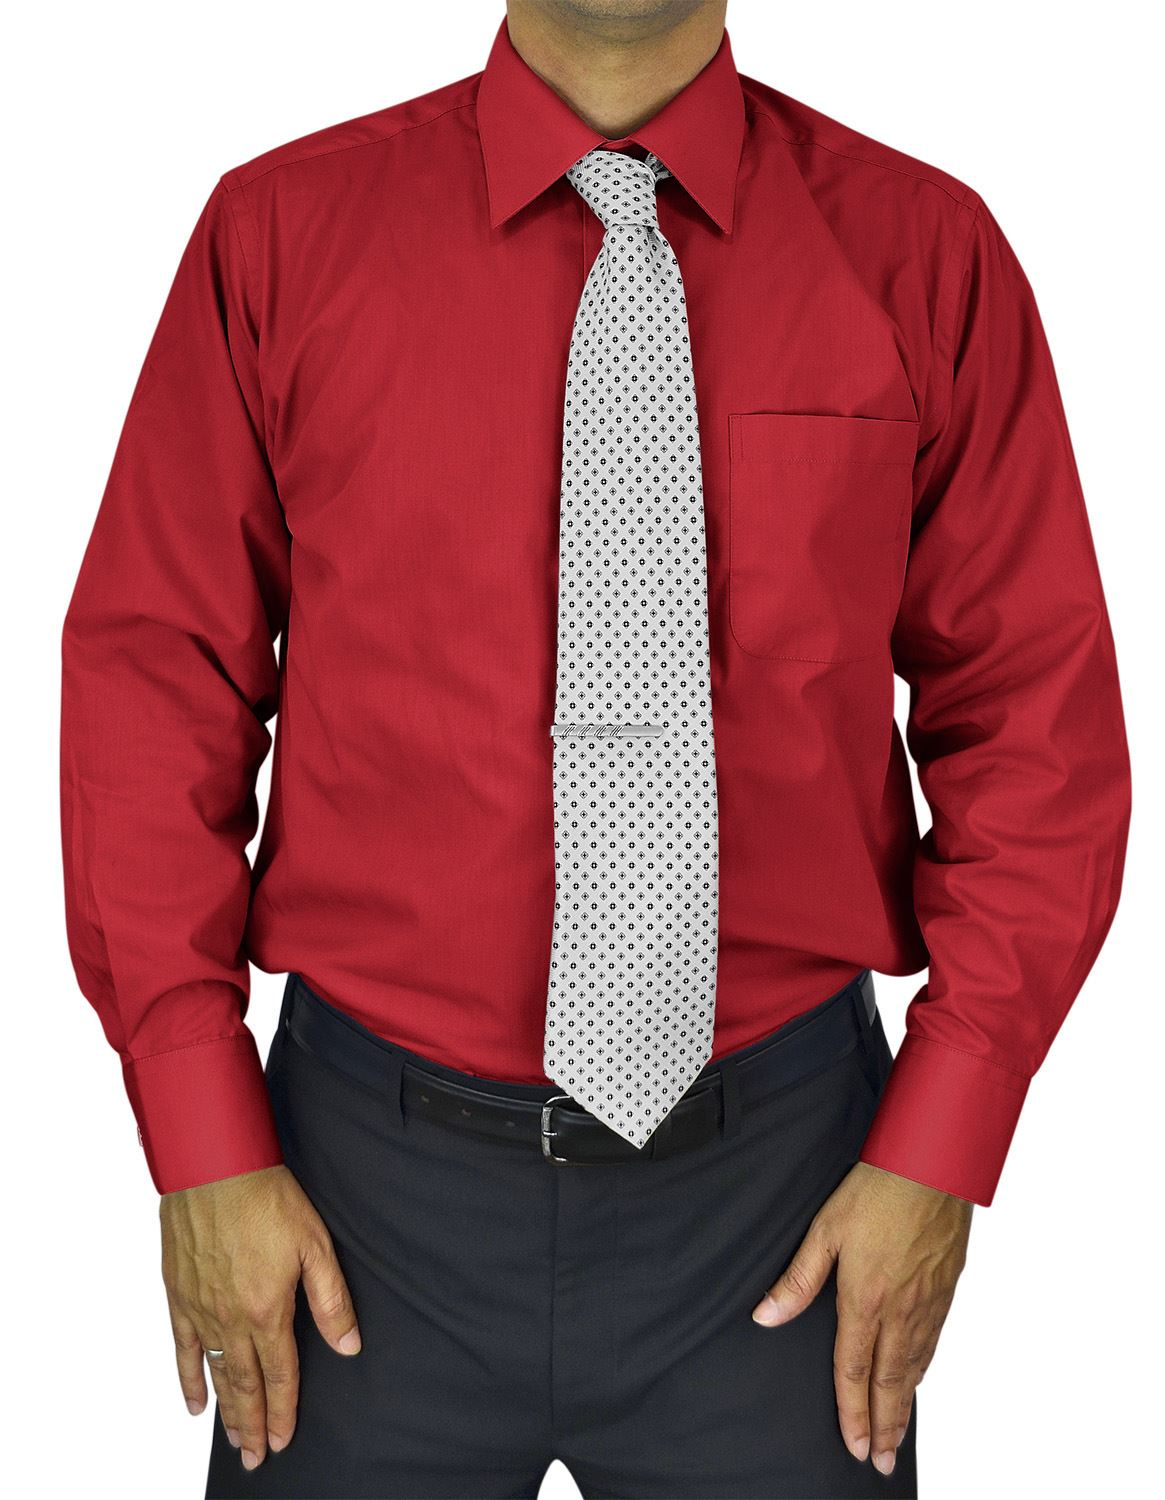 Mens Dress Shirt Slim and Regular Fit Office Casual French Cuff Moda Di Raza - Red 14.5